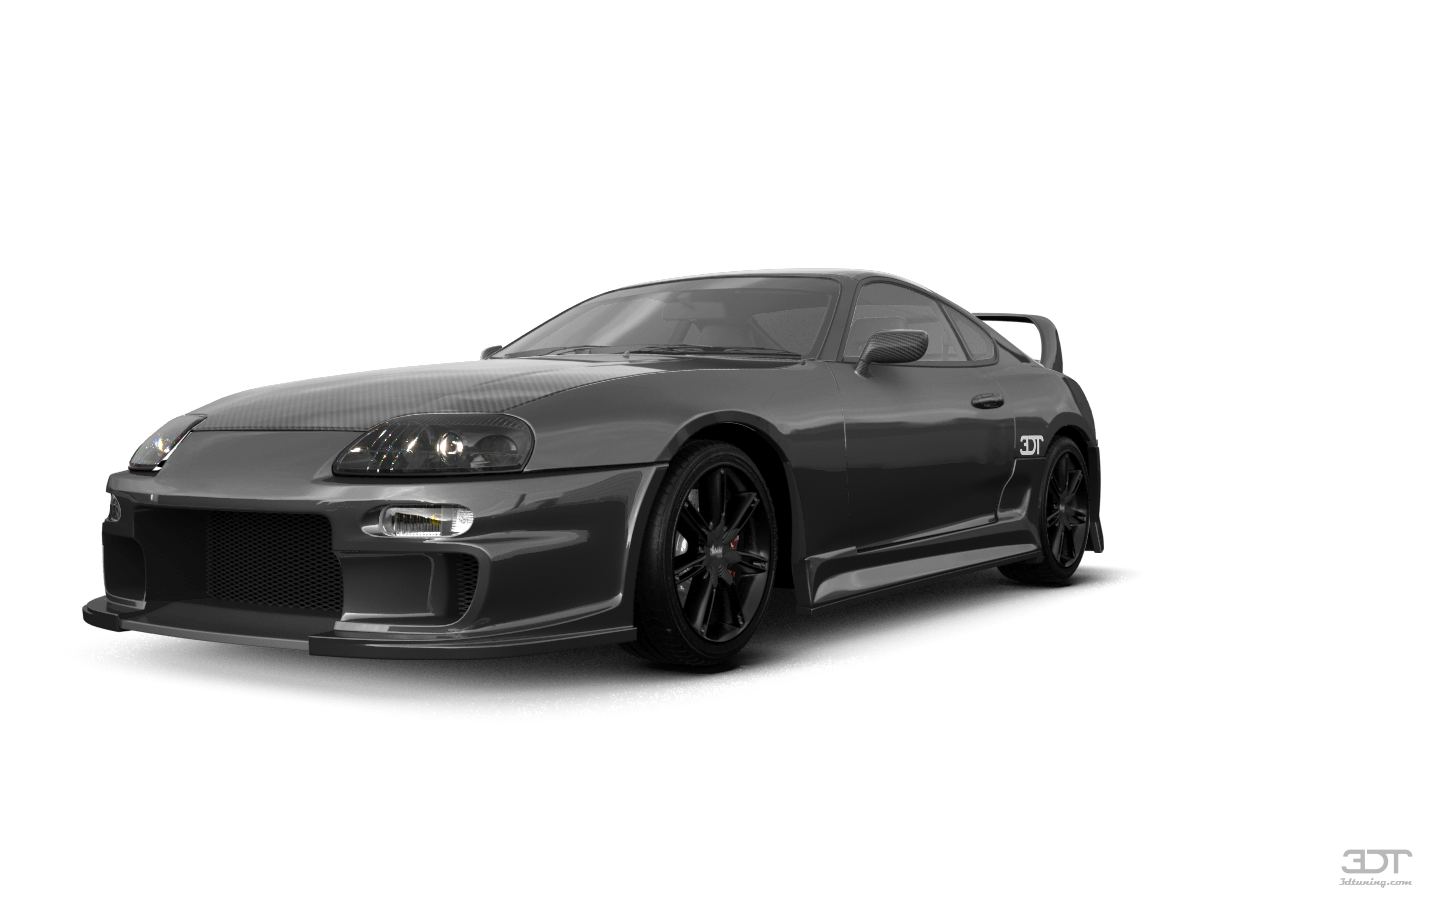 Toyota Supra 2 Door Coupe 2000 tuning